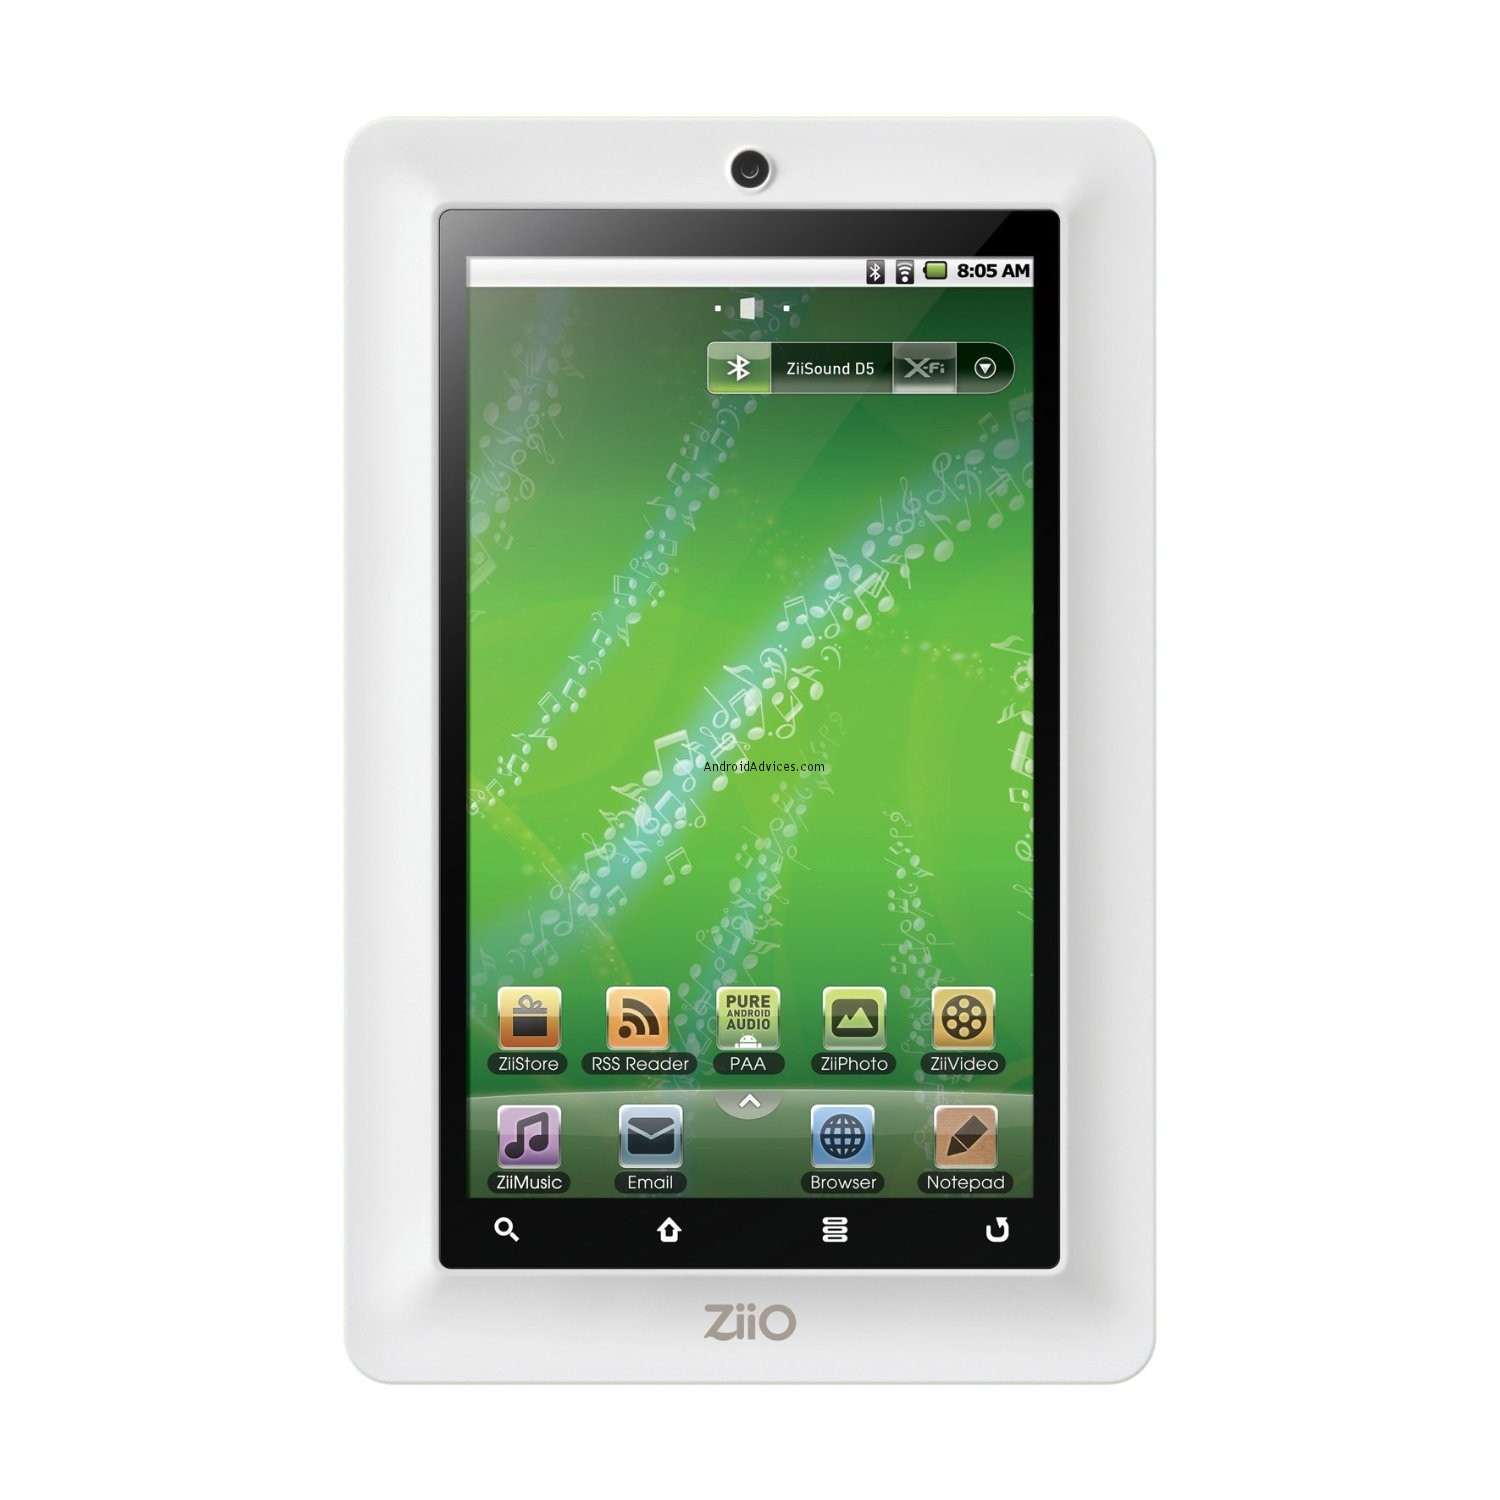 Creative ZiiO Android tablet